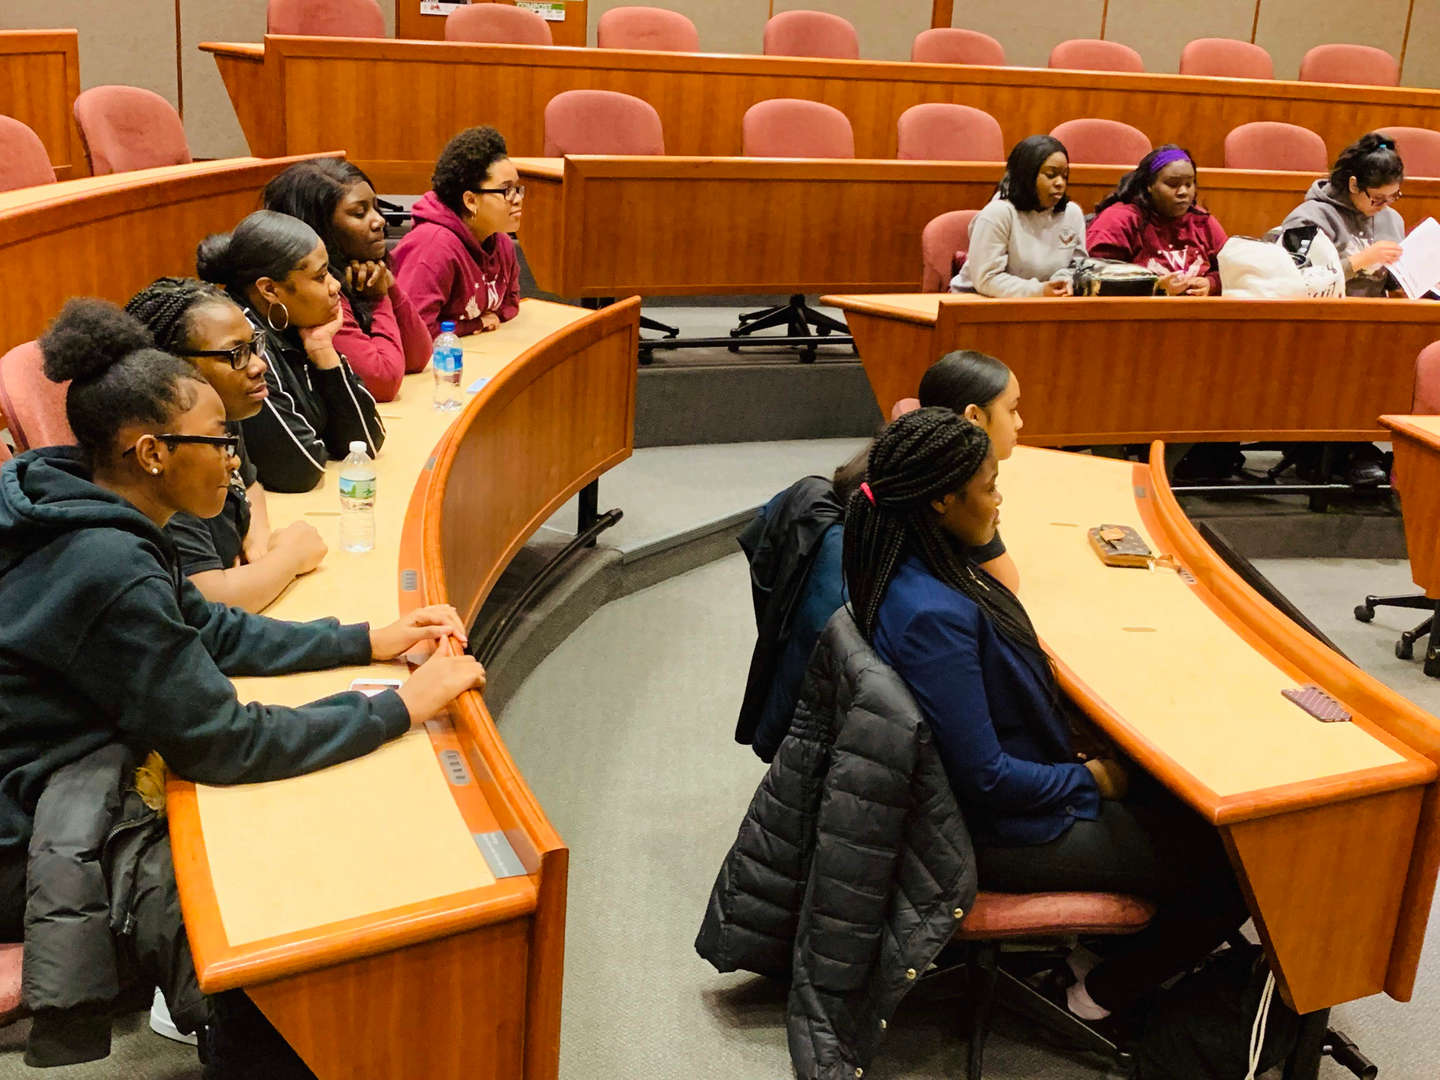 Scholars Listening in a Courtroom